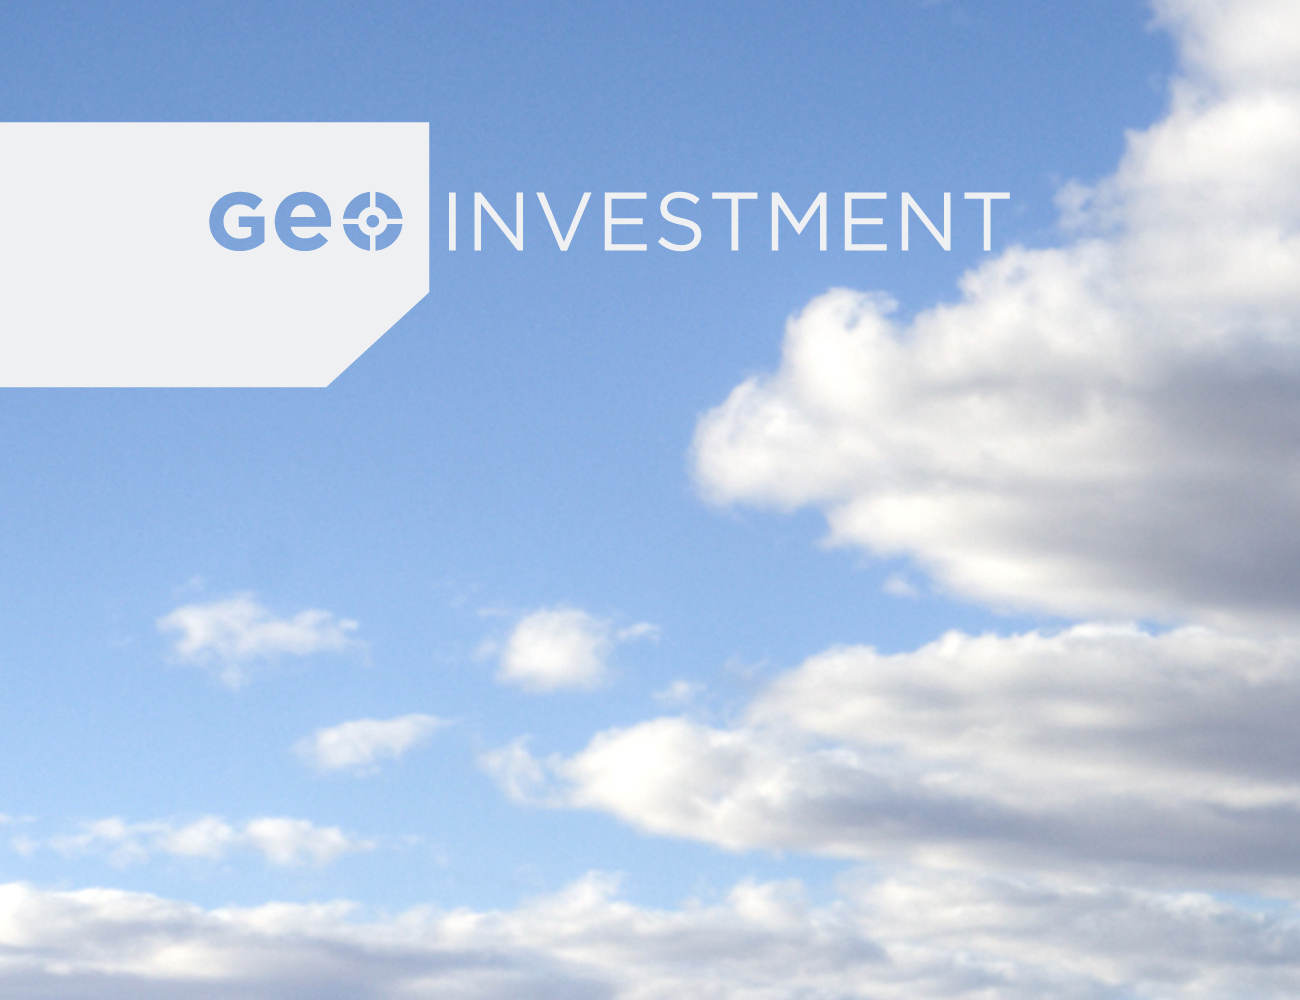 Geoinvestment-04